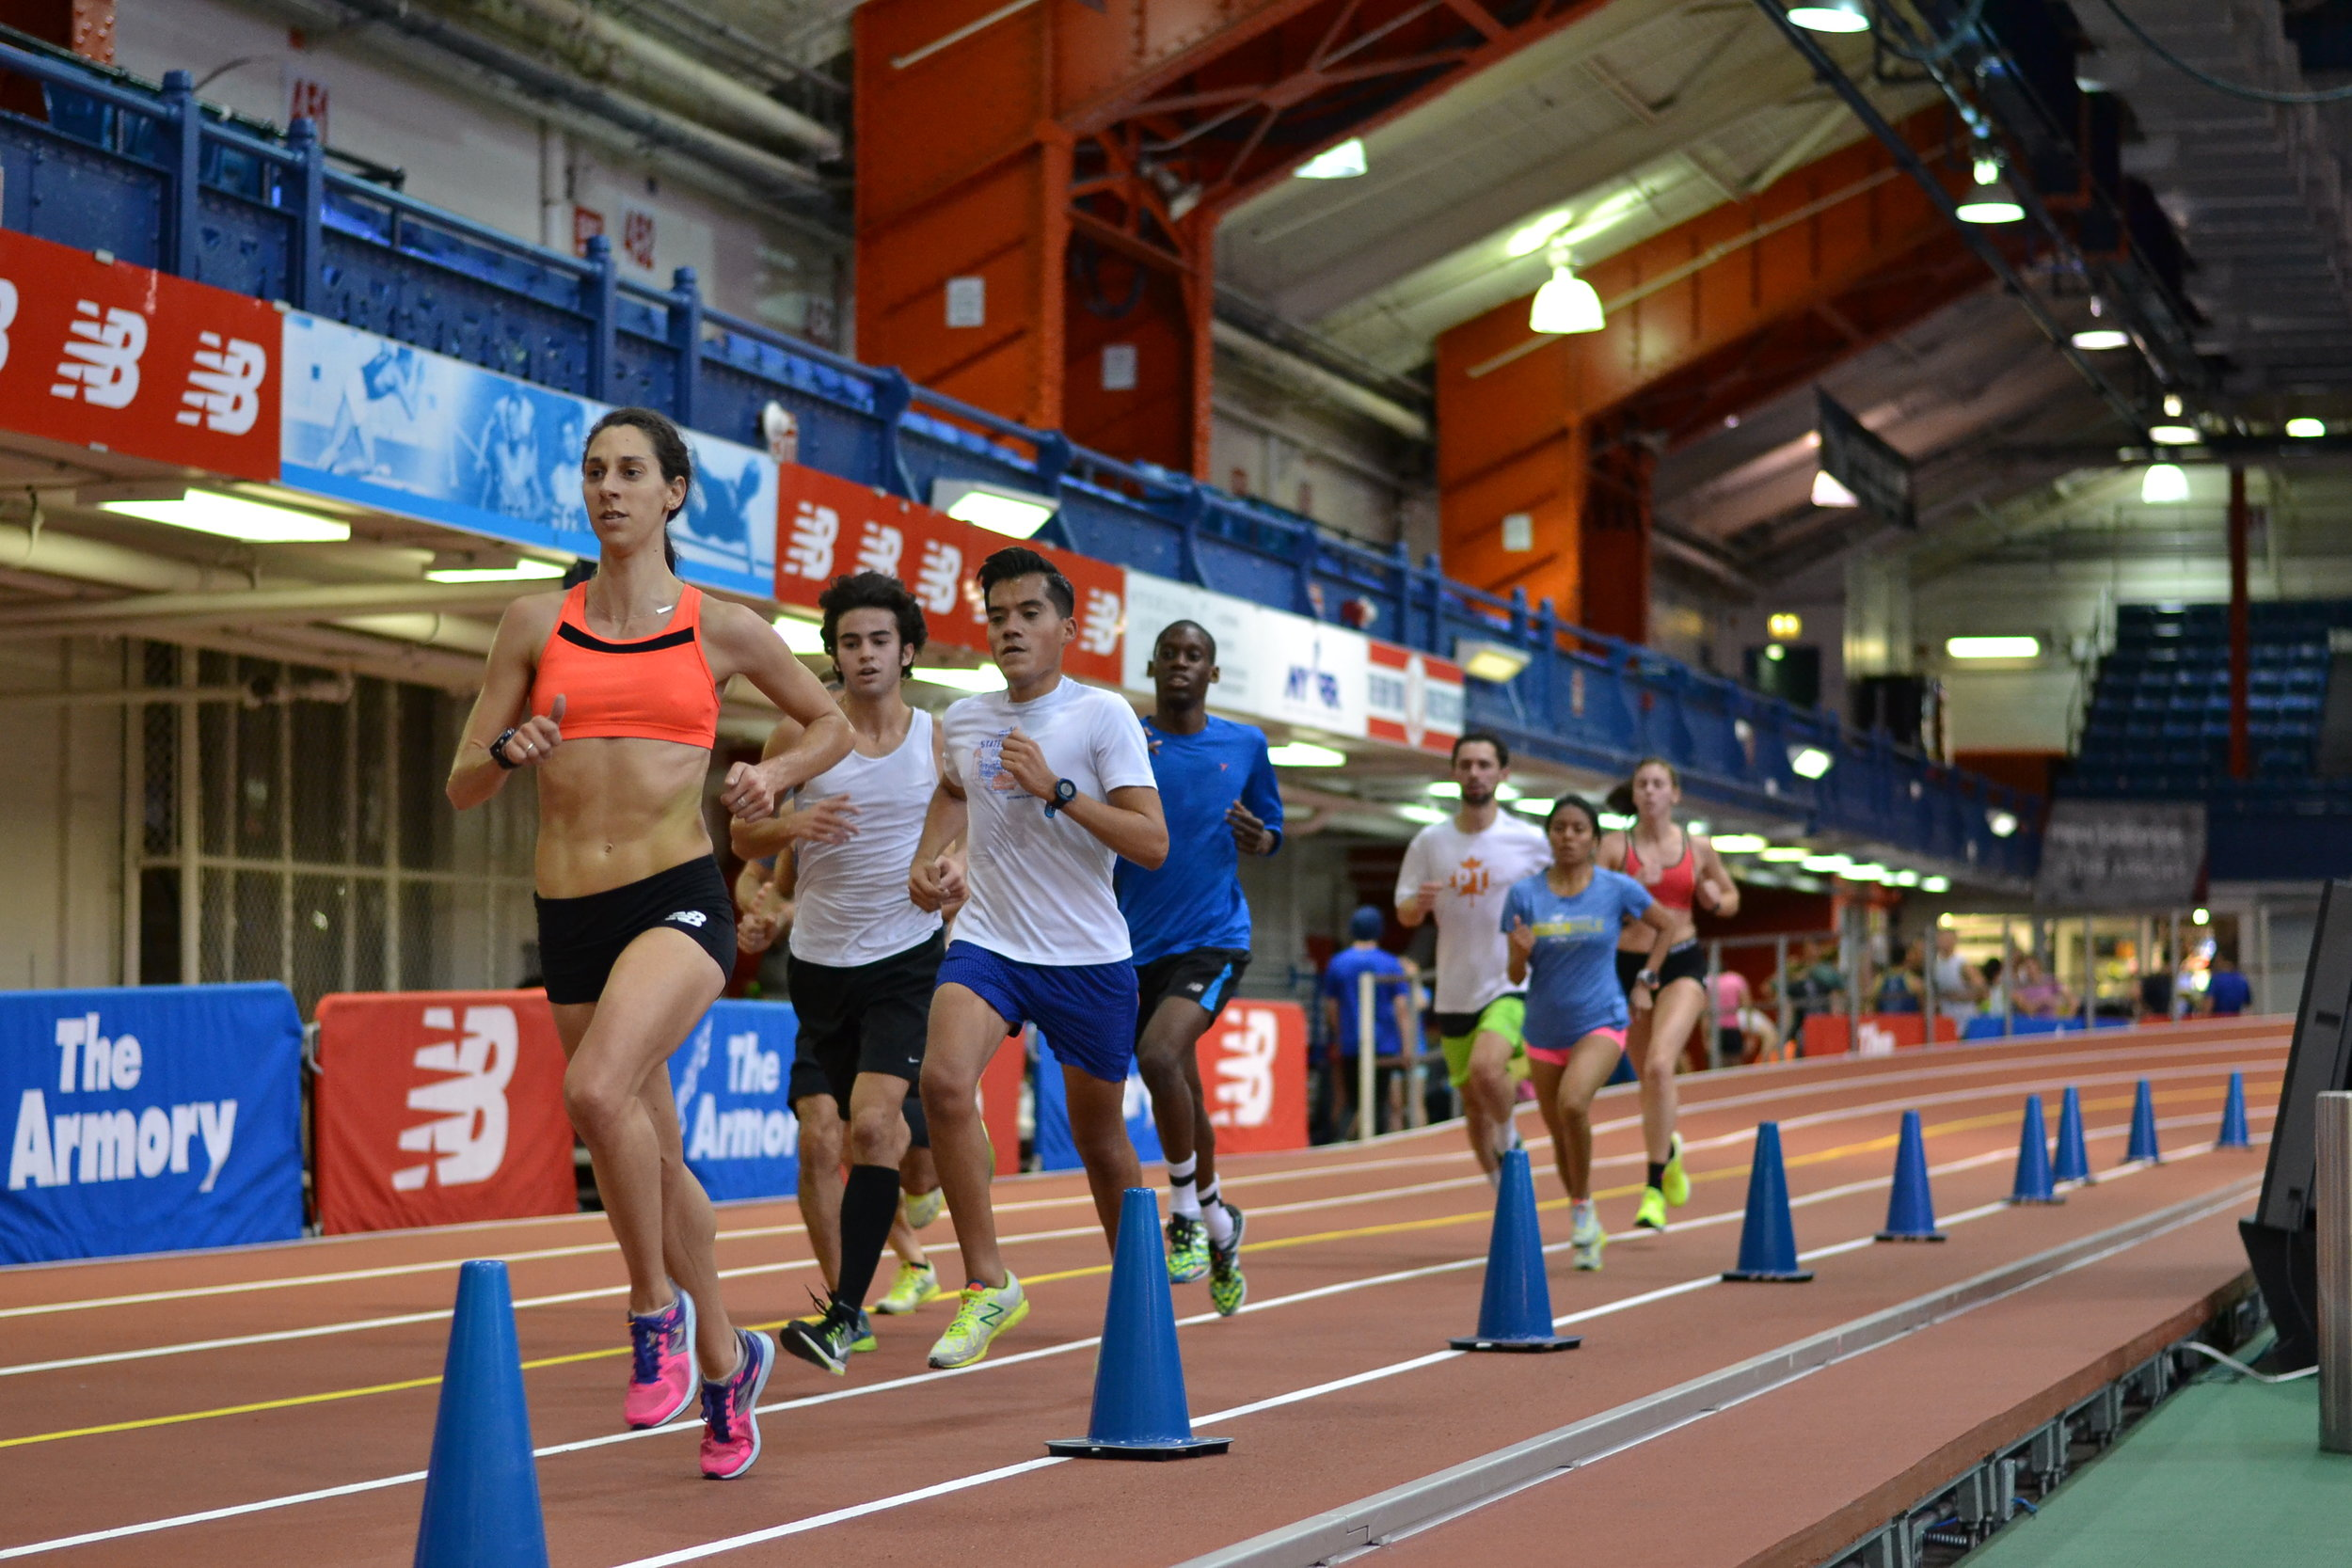 Get out of the cold and join us on the fastest track in the world 5 days a week every indoor season.